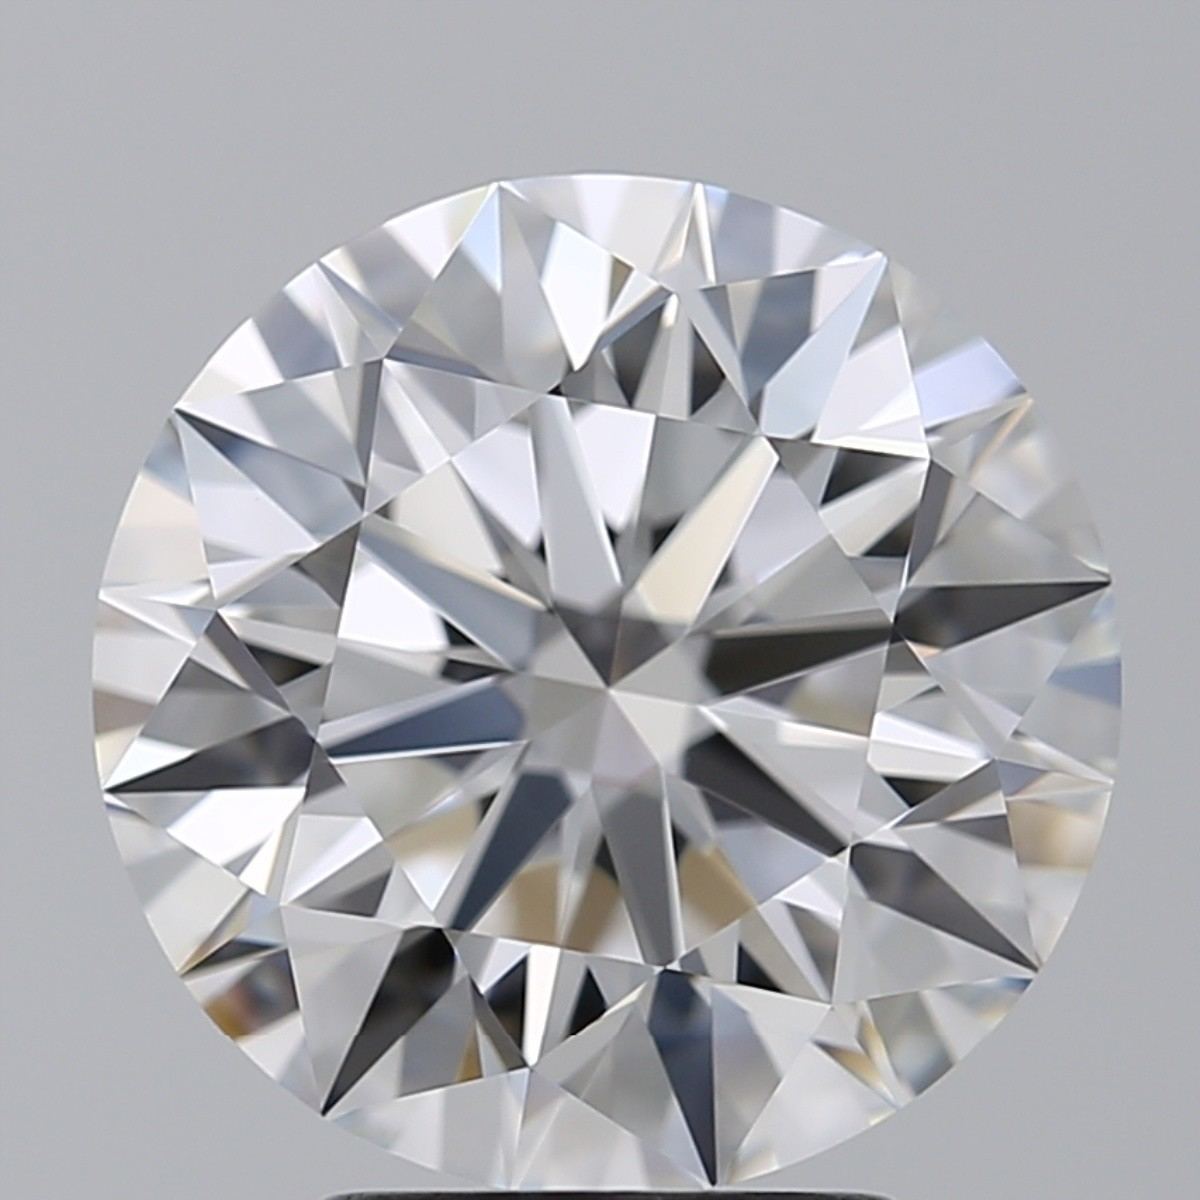 3.57 Carat Round Brilliant Diamond (D/VVS1)